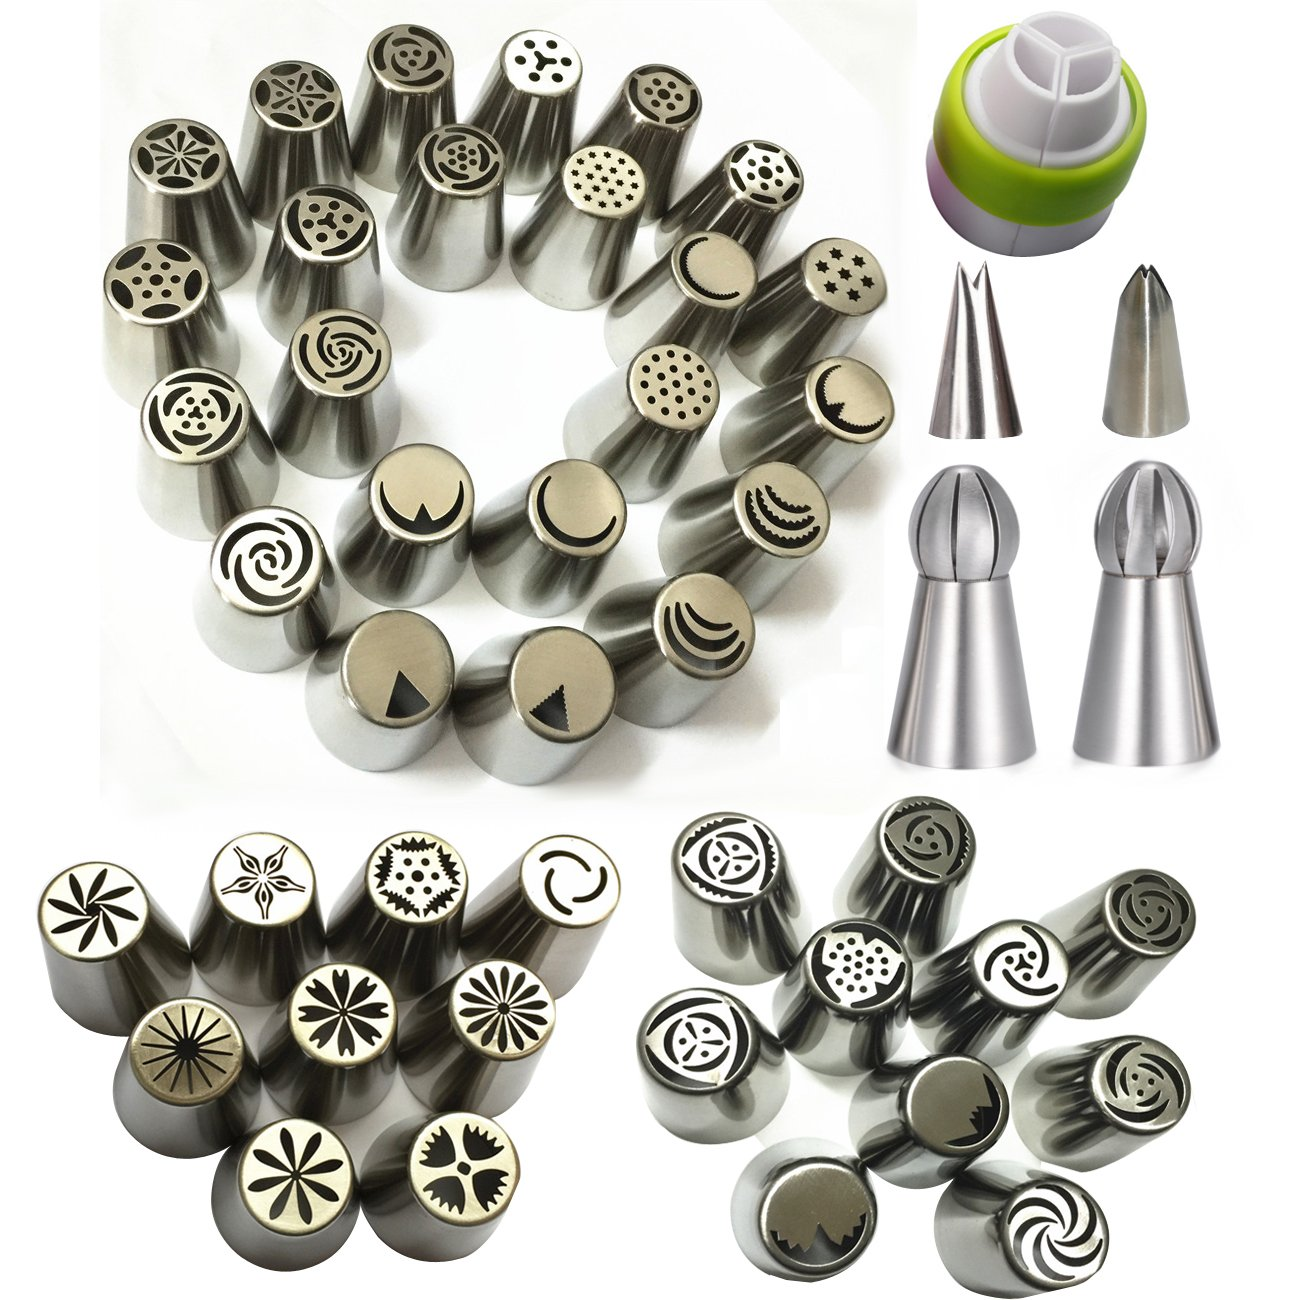 Russian Piping Tips 46 Pcs Set - KOOTIPS Cake/Cupcake Decorating Icing Tips - 41 Extra Large Stainless Steel Pastry Nozzle Tips and 2 Leaf Tips, 1 XL Coupler and 2 Ball Ice Tips